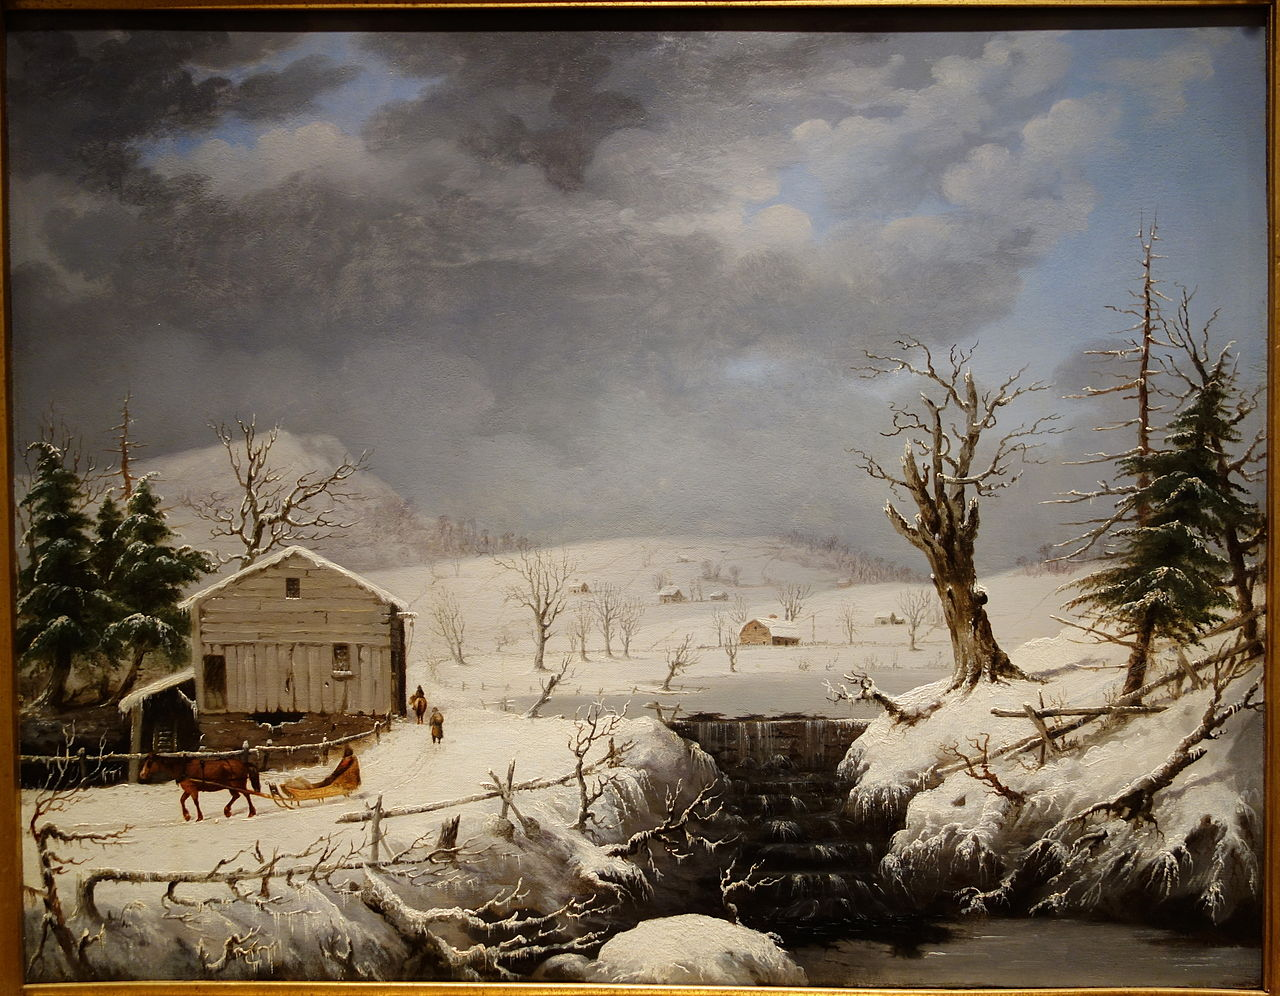 https://upload.wikimedia.org/wikipedia/commons/thumb/f/f3/Winter_in_New_England_by_George_Henry_Durrie%2C_1851%2C_oil_on_wood_panel_-_New_Britain_Museum_of_American_Art_-_DSC09228.JPG/1280px-Winter_in_New_England_by_George_Henry_Durrie%2C_1851%2C_oil_on_wood_panel_-_New_Britain_Museum_of_American_Art_-_DSC09228.JPG